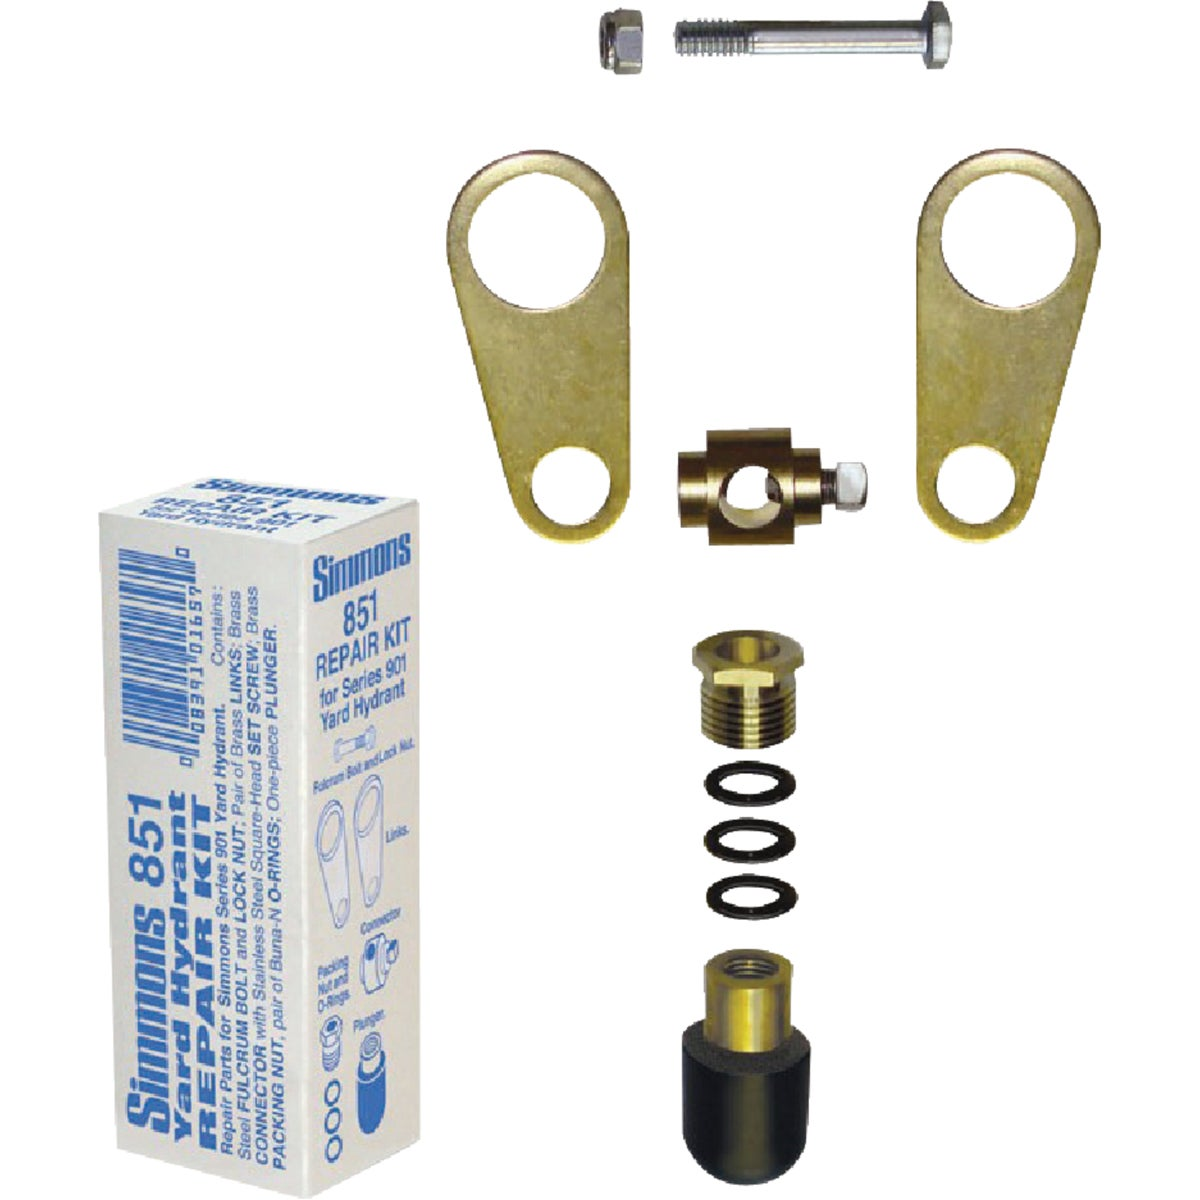 HYDRANT REPAIR KIT - 851 by Simmons Mfg Co